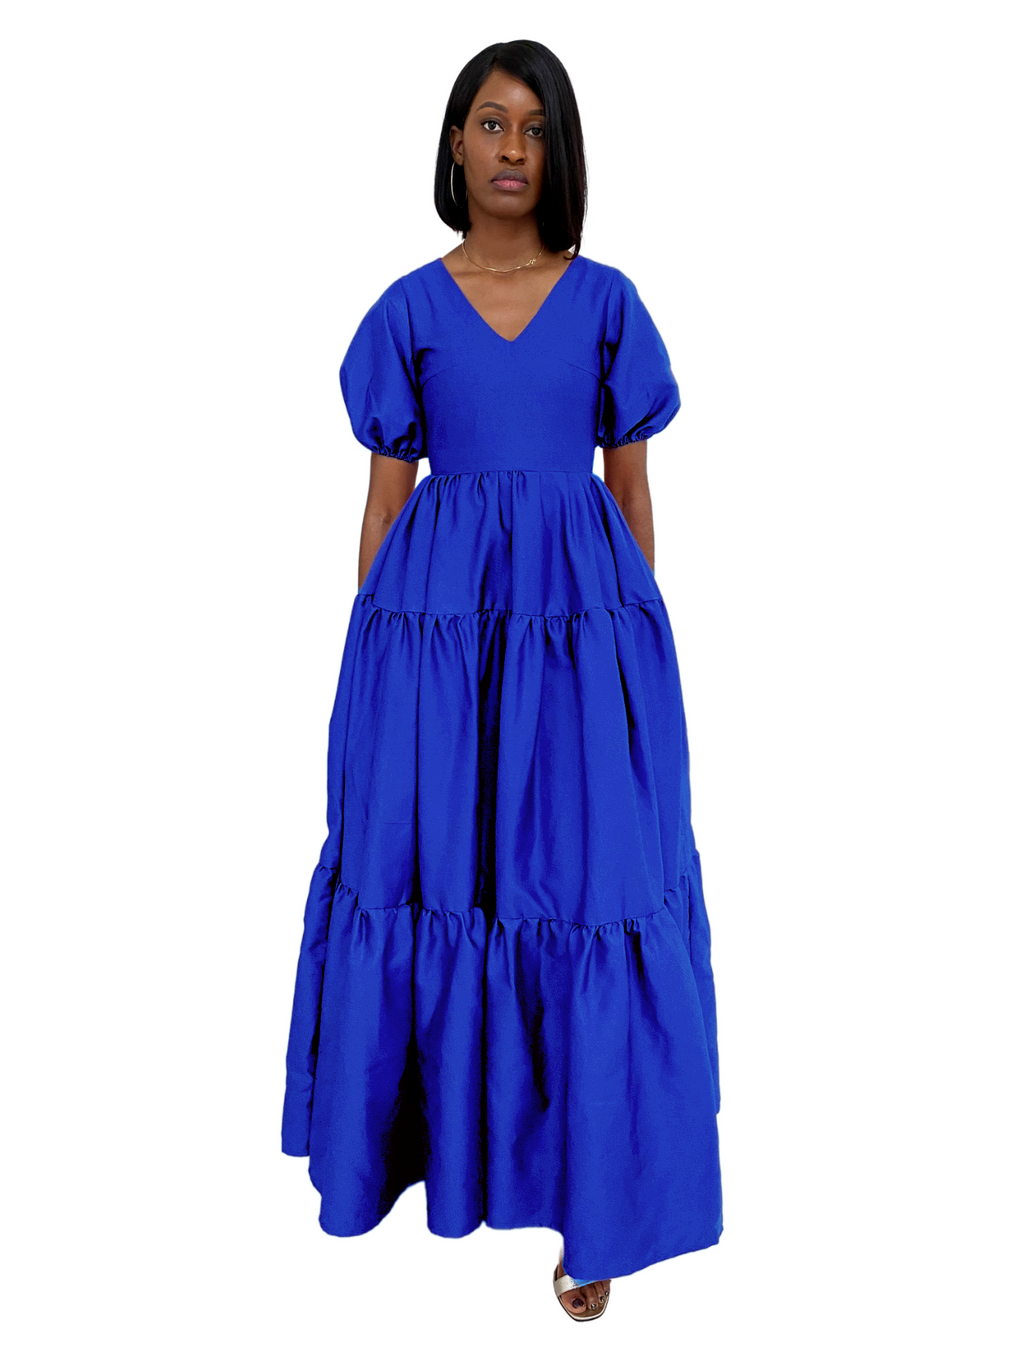 Zina 2.0 Dress in Cobalt Blue